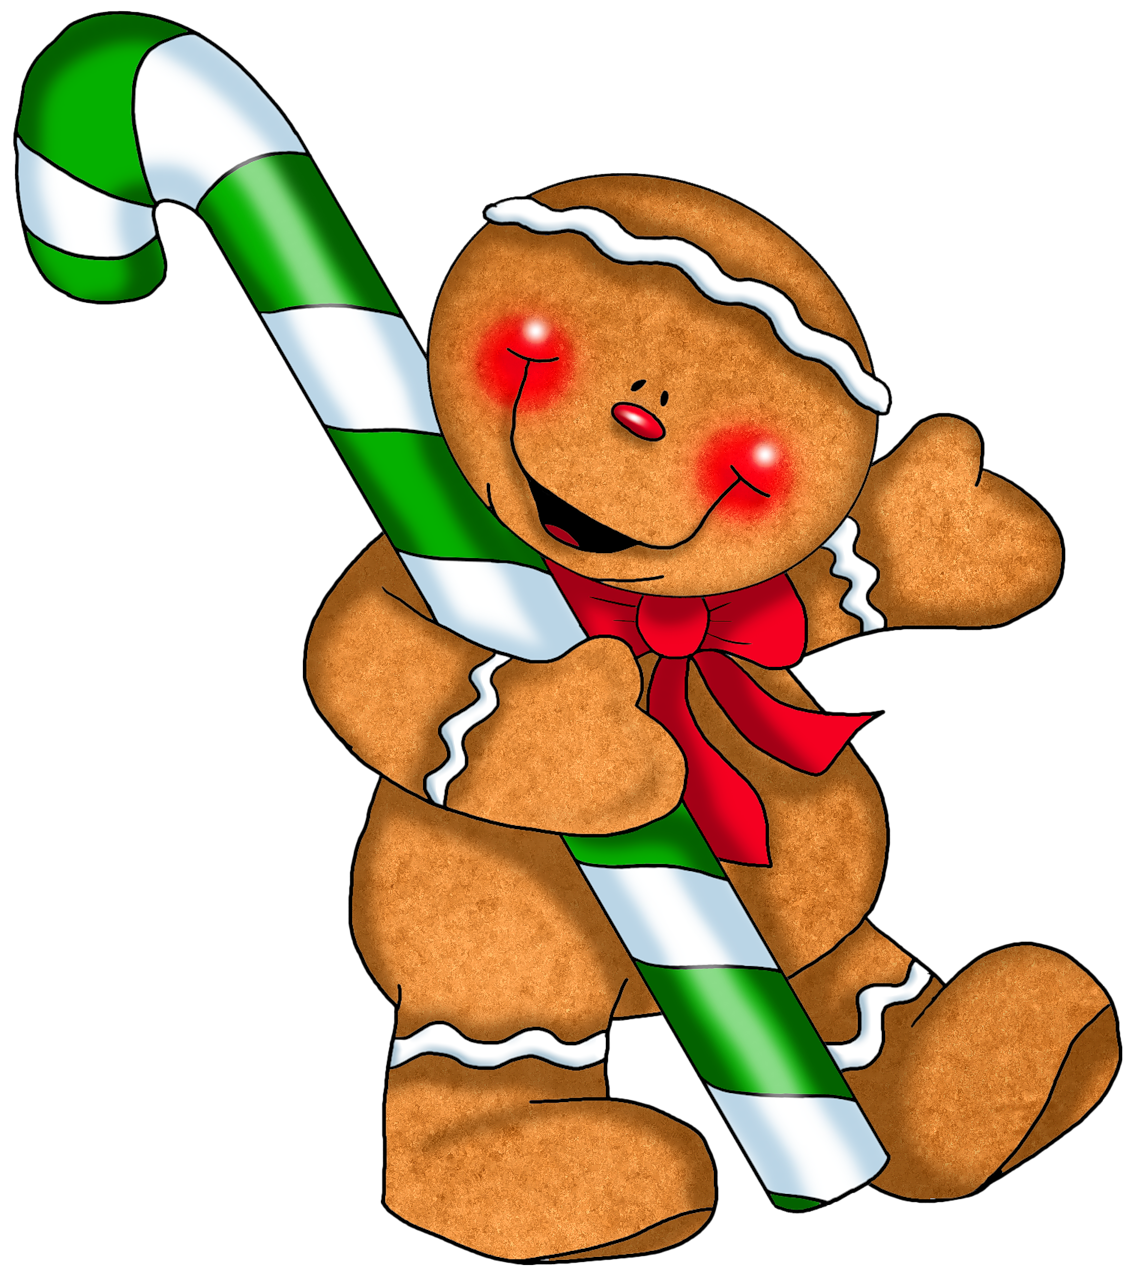 Clipart door gingerbread house. Candy cane clip art